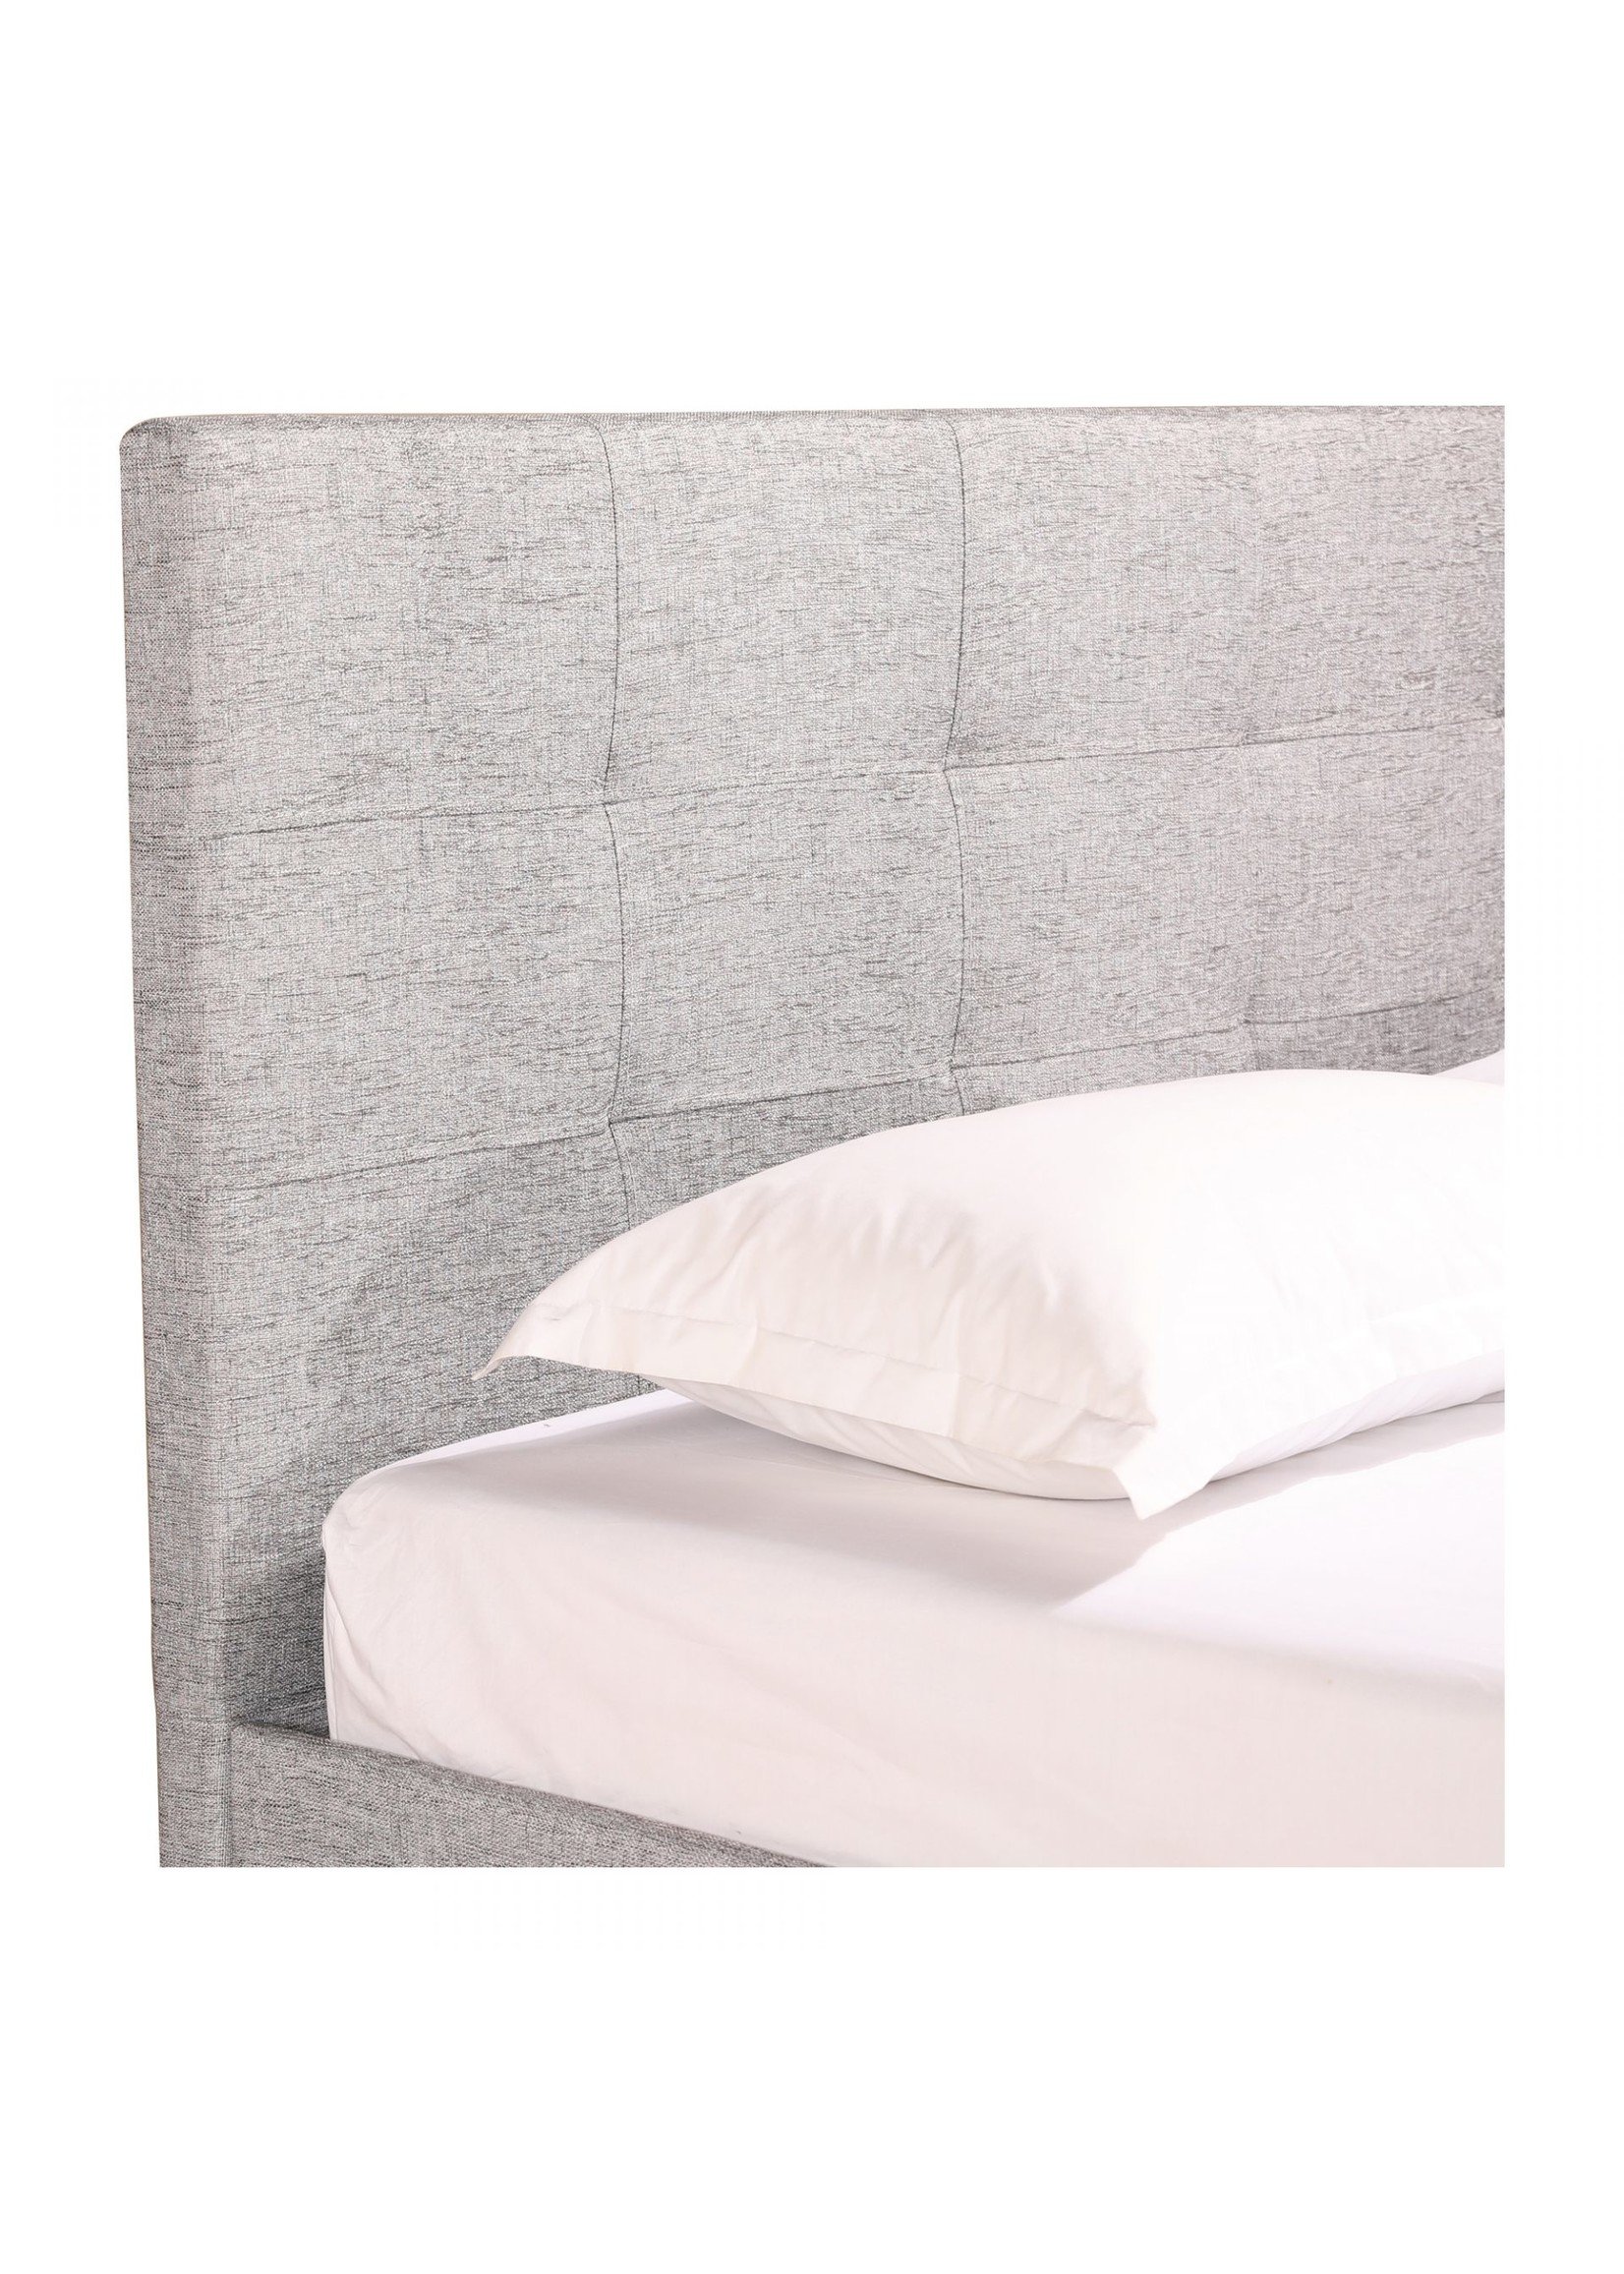 Moes Home Collection Eliza Queen Bed Light Grey by MOES